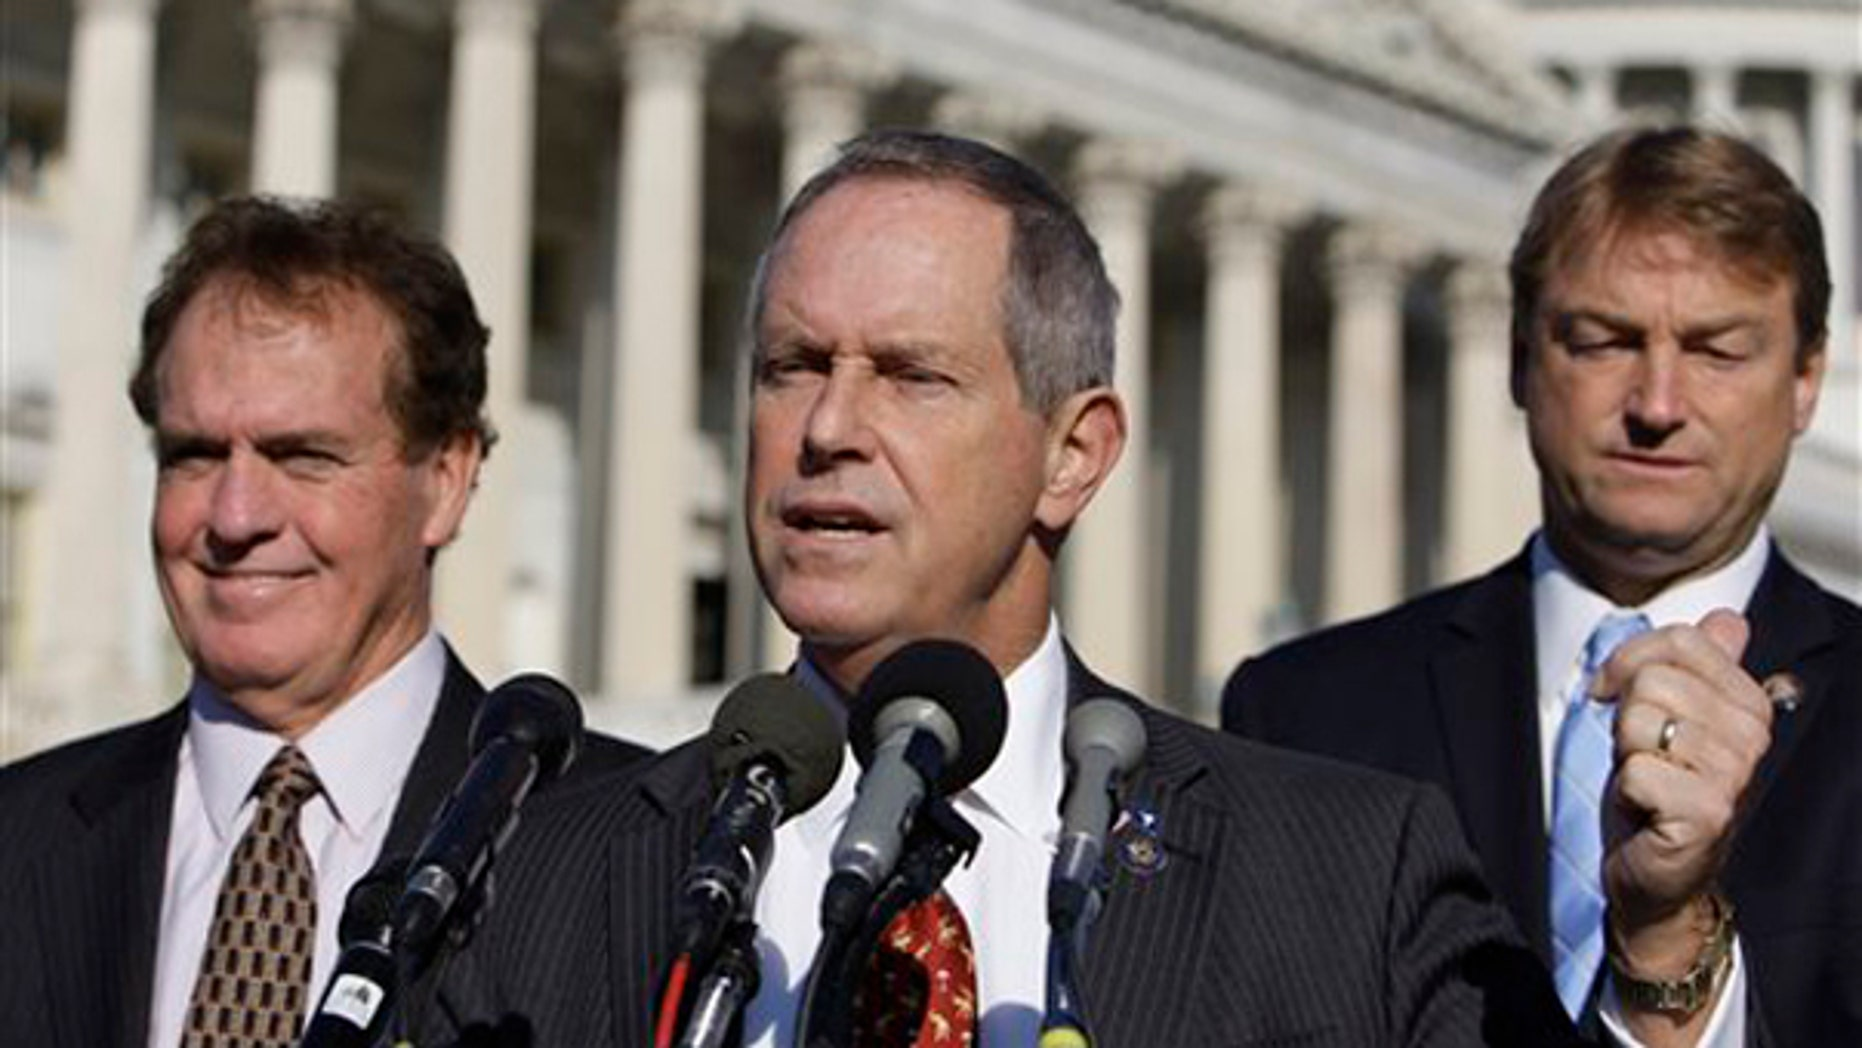 Rep. Joe Wilson, R-S.C., center, speaks about health care reform Nov. 4 in Washington, by Rep. Phil Gingrey, R-Ga., right, and Rep. Dean Heller, R-Nev. (AP Photo)